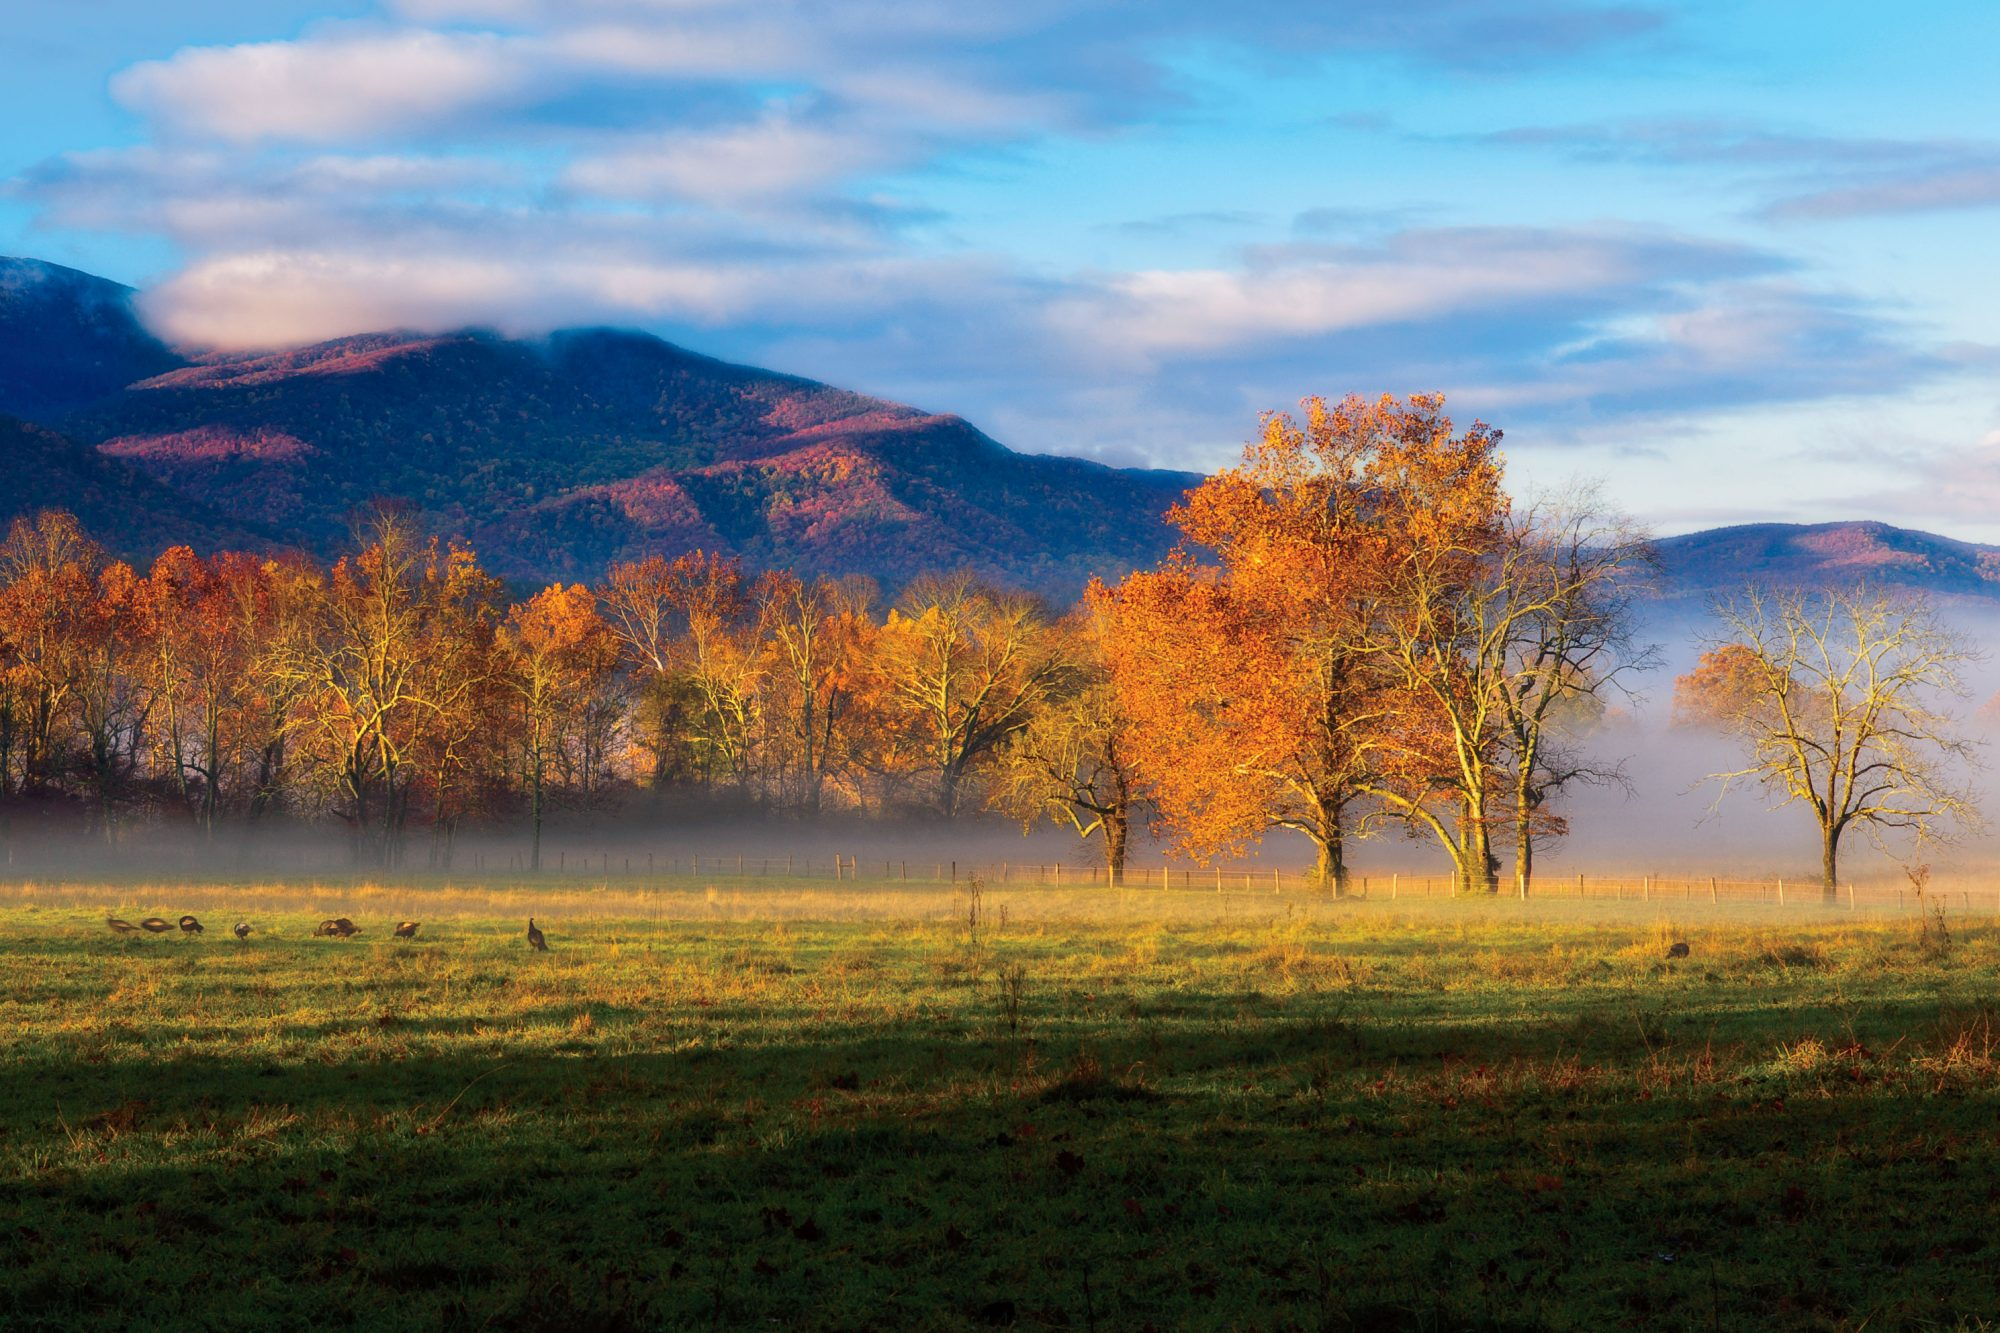 Cades Cove in Tennessee Mountain View